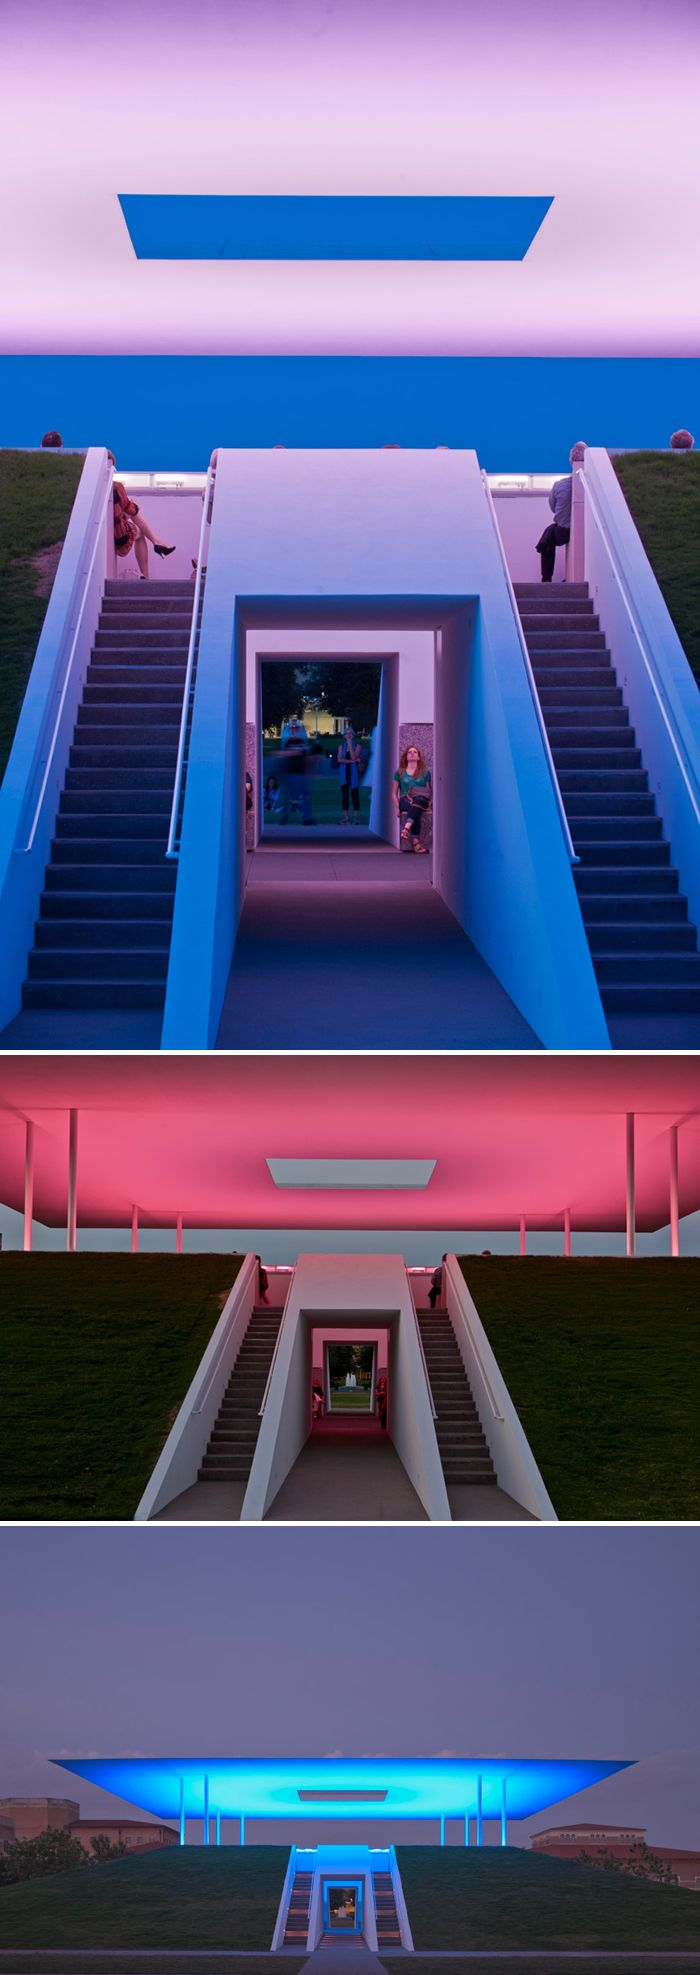 Twilight Epiphany by James Turrell at Rice University